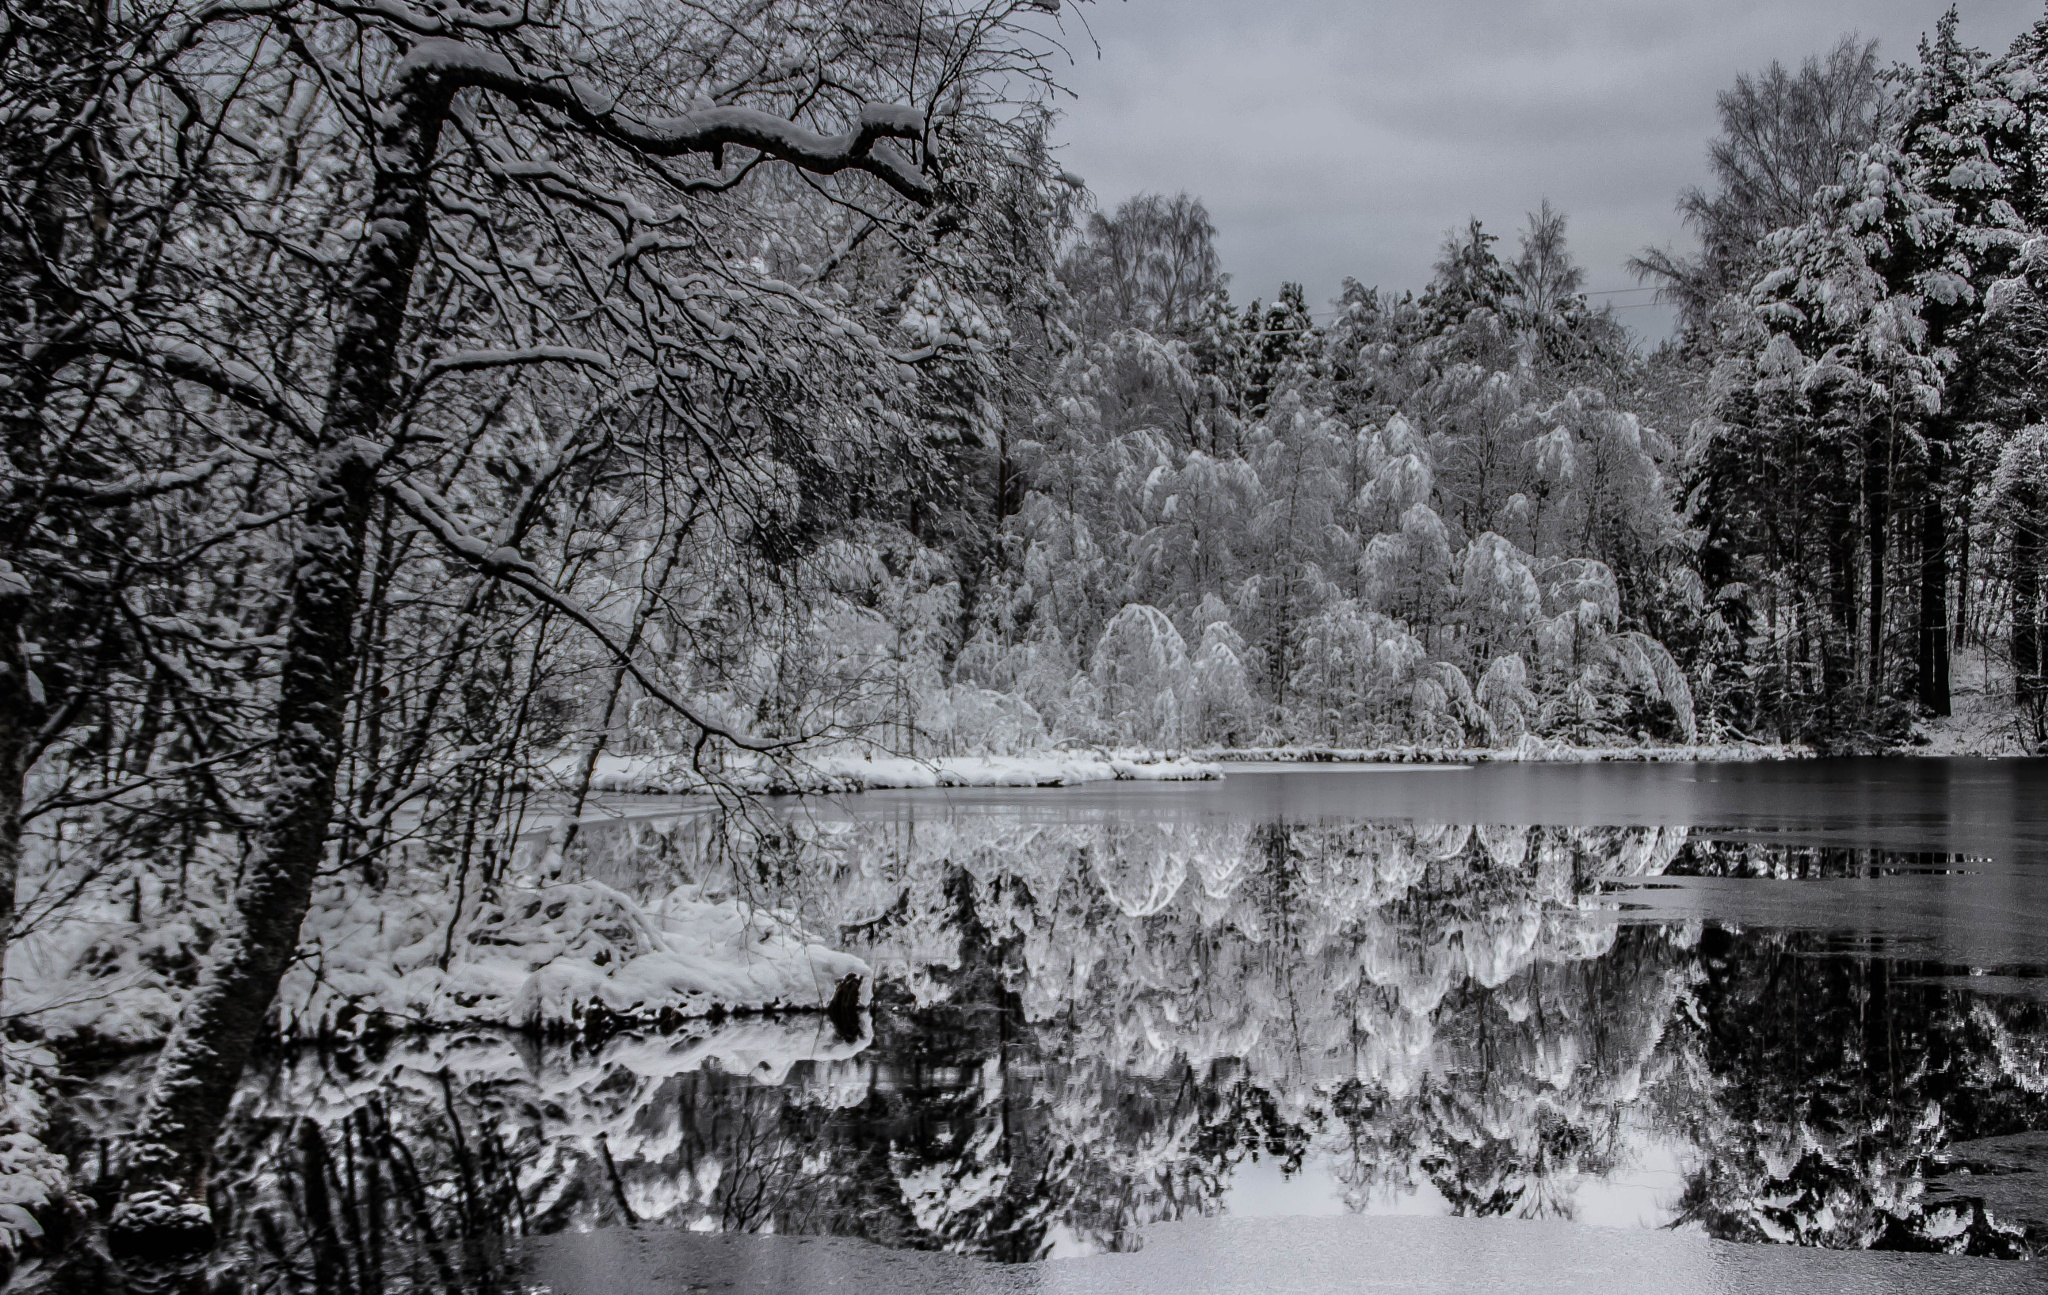 Winter arrives in a small pond ... by SakariPartio